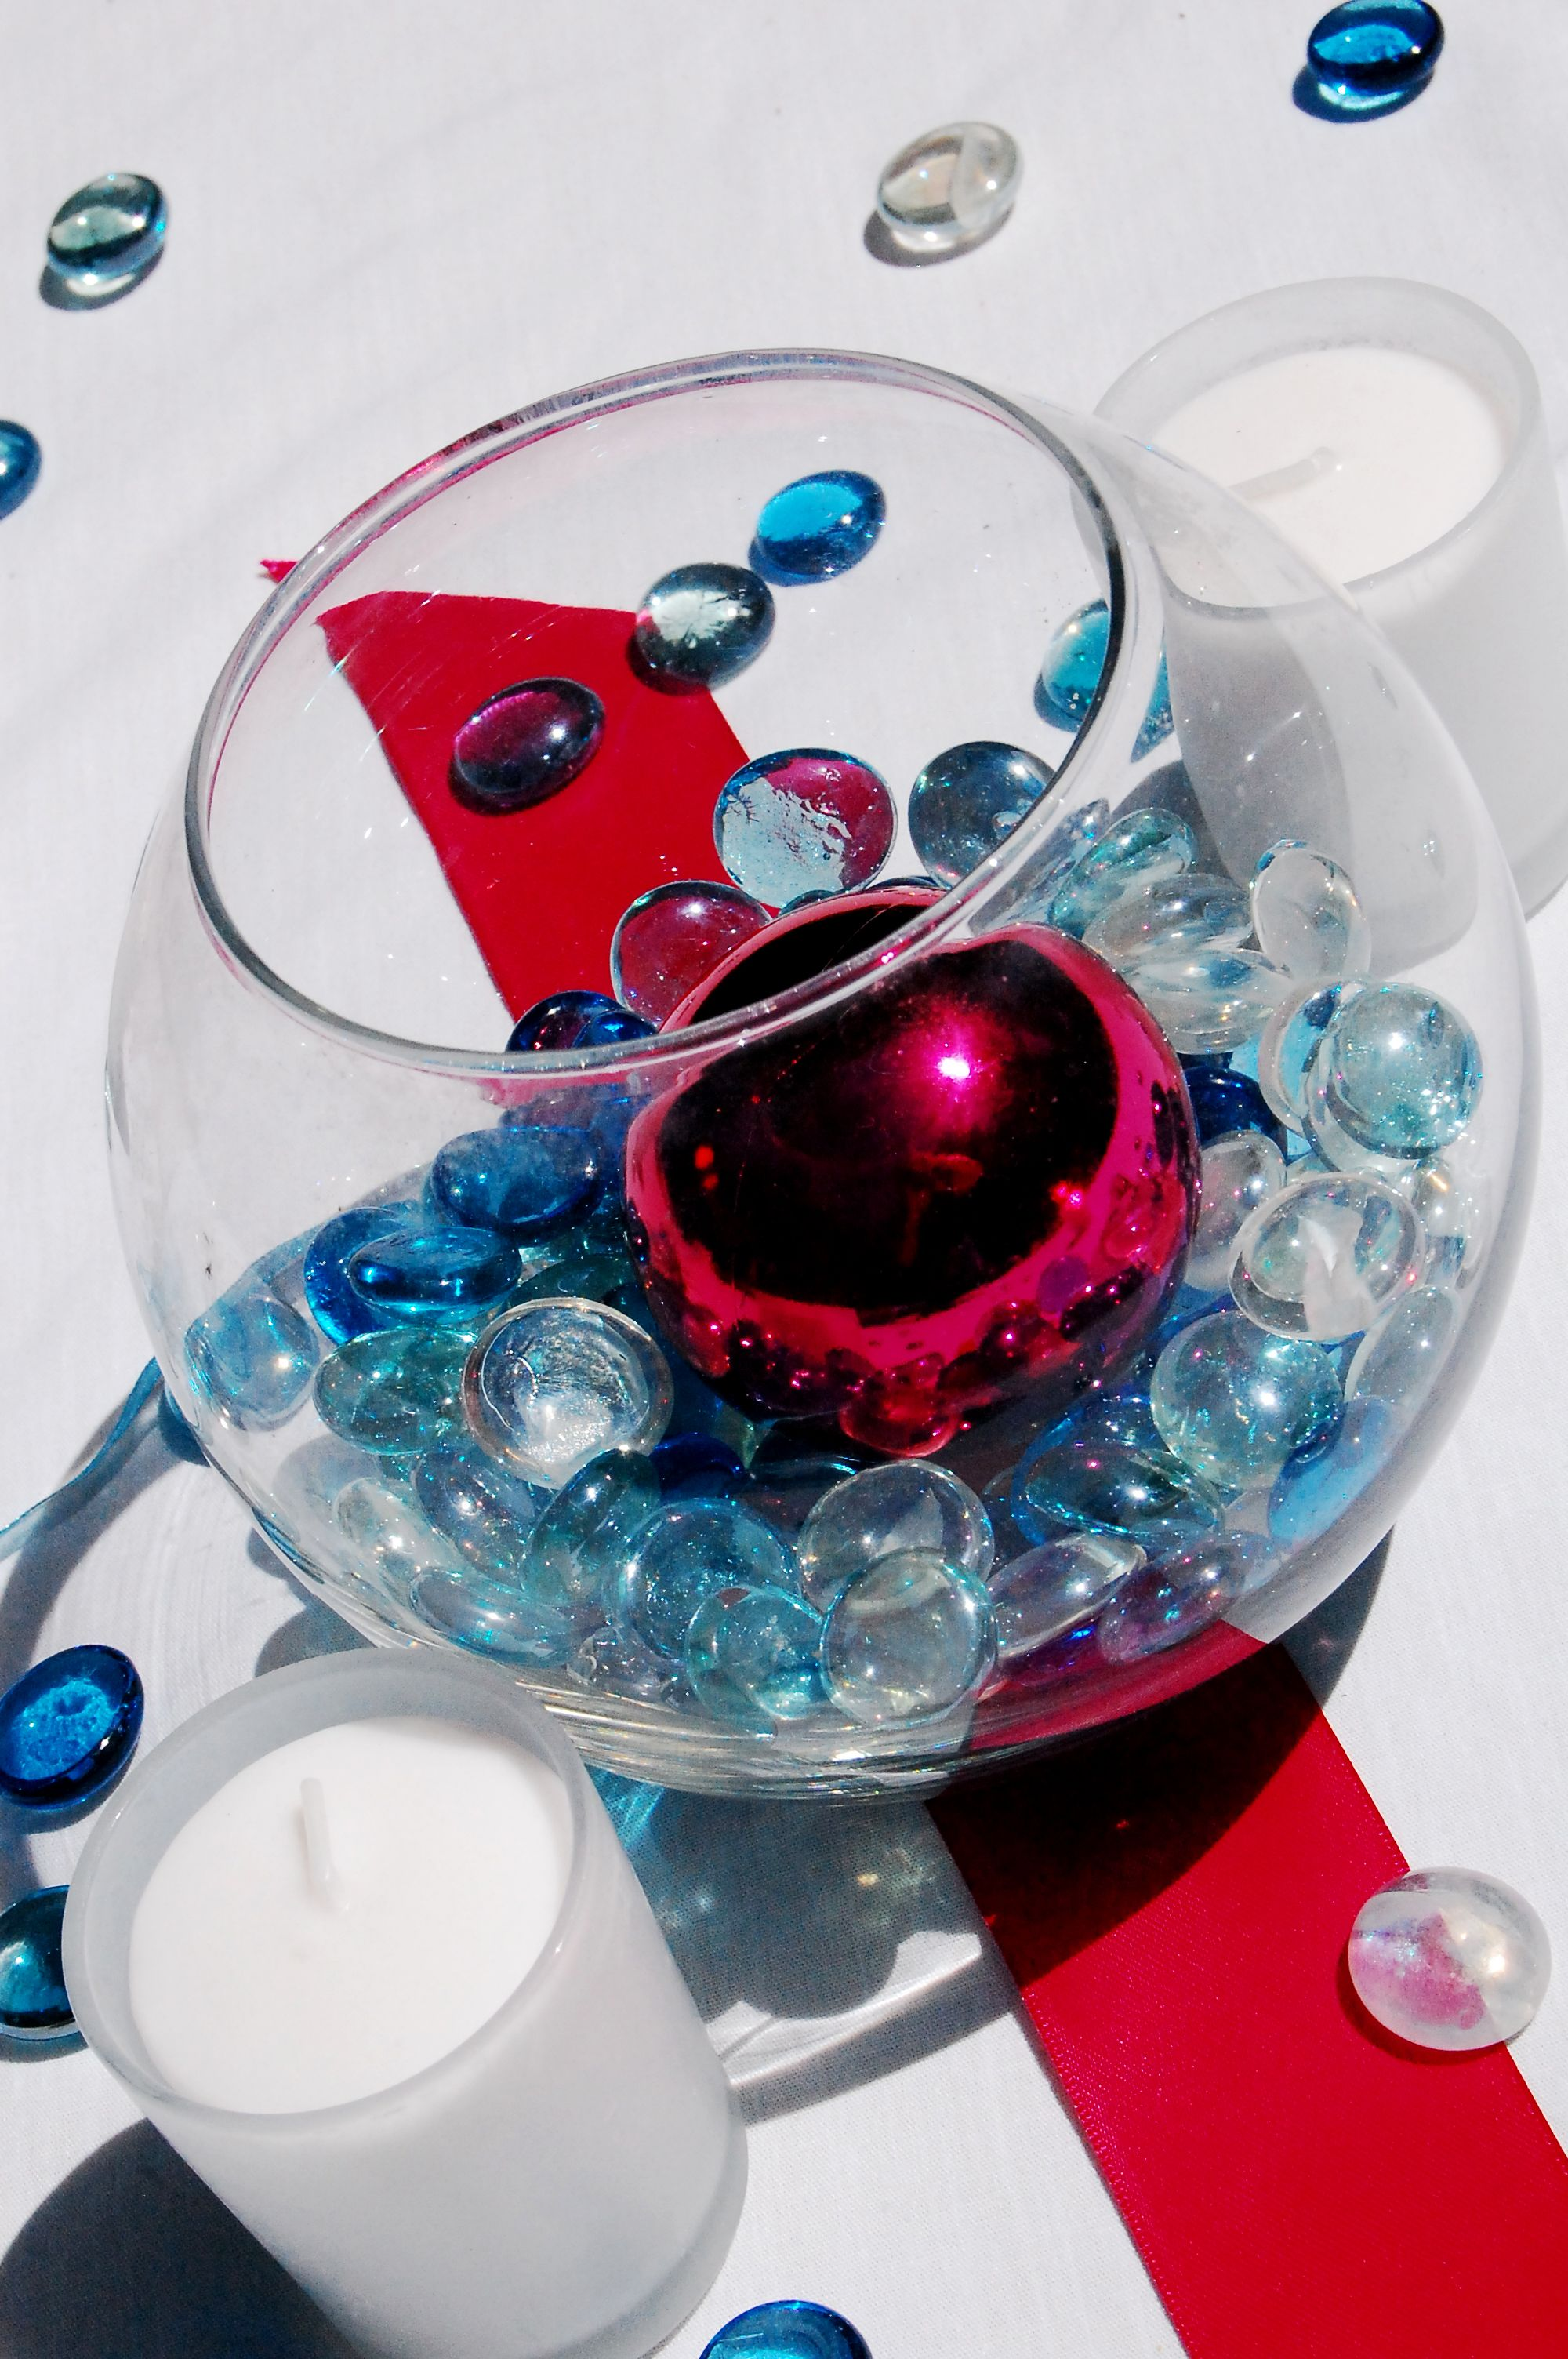 How To Decorate Fish Bowl Wedding Decor  Fish Bowl With Colorful Glass Stones  Wedding